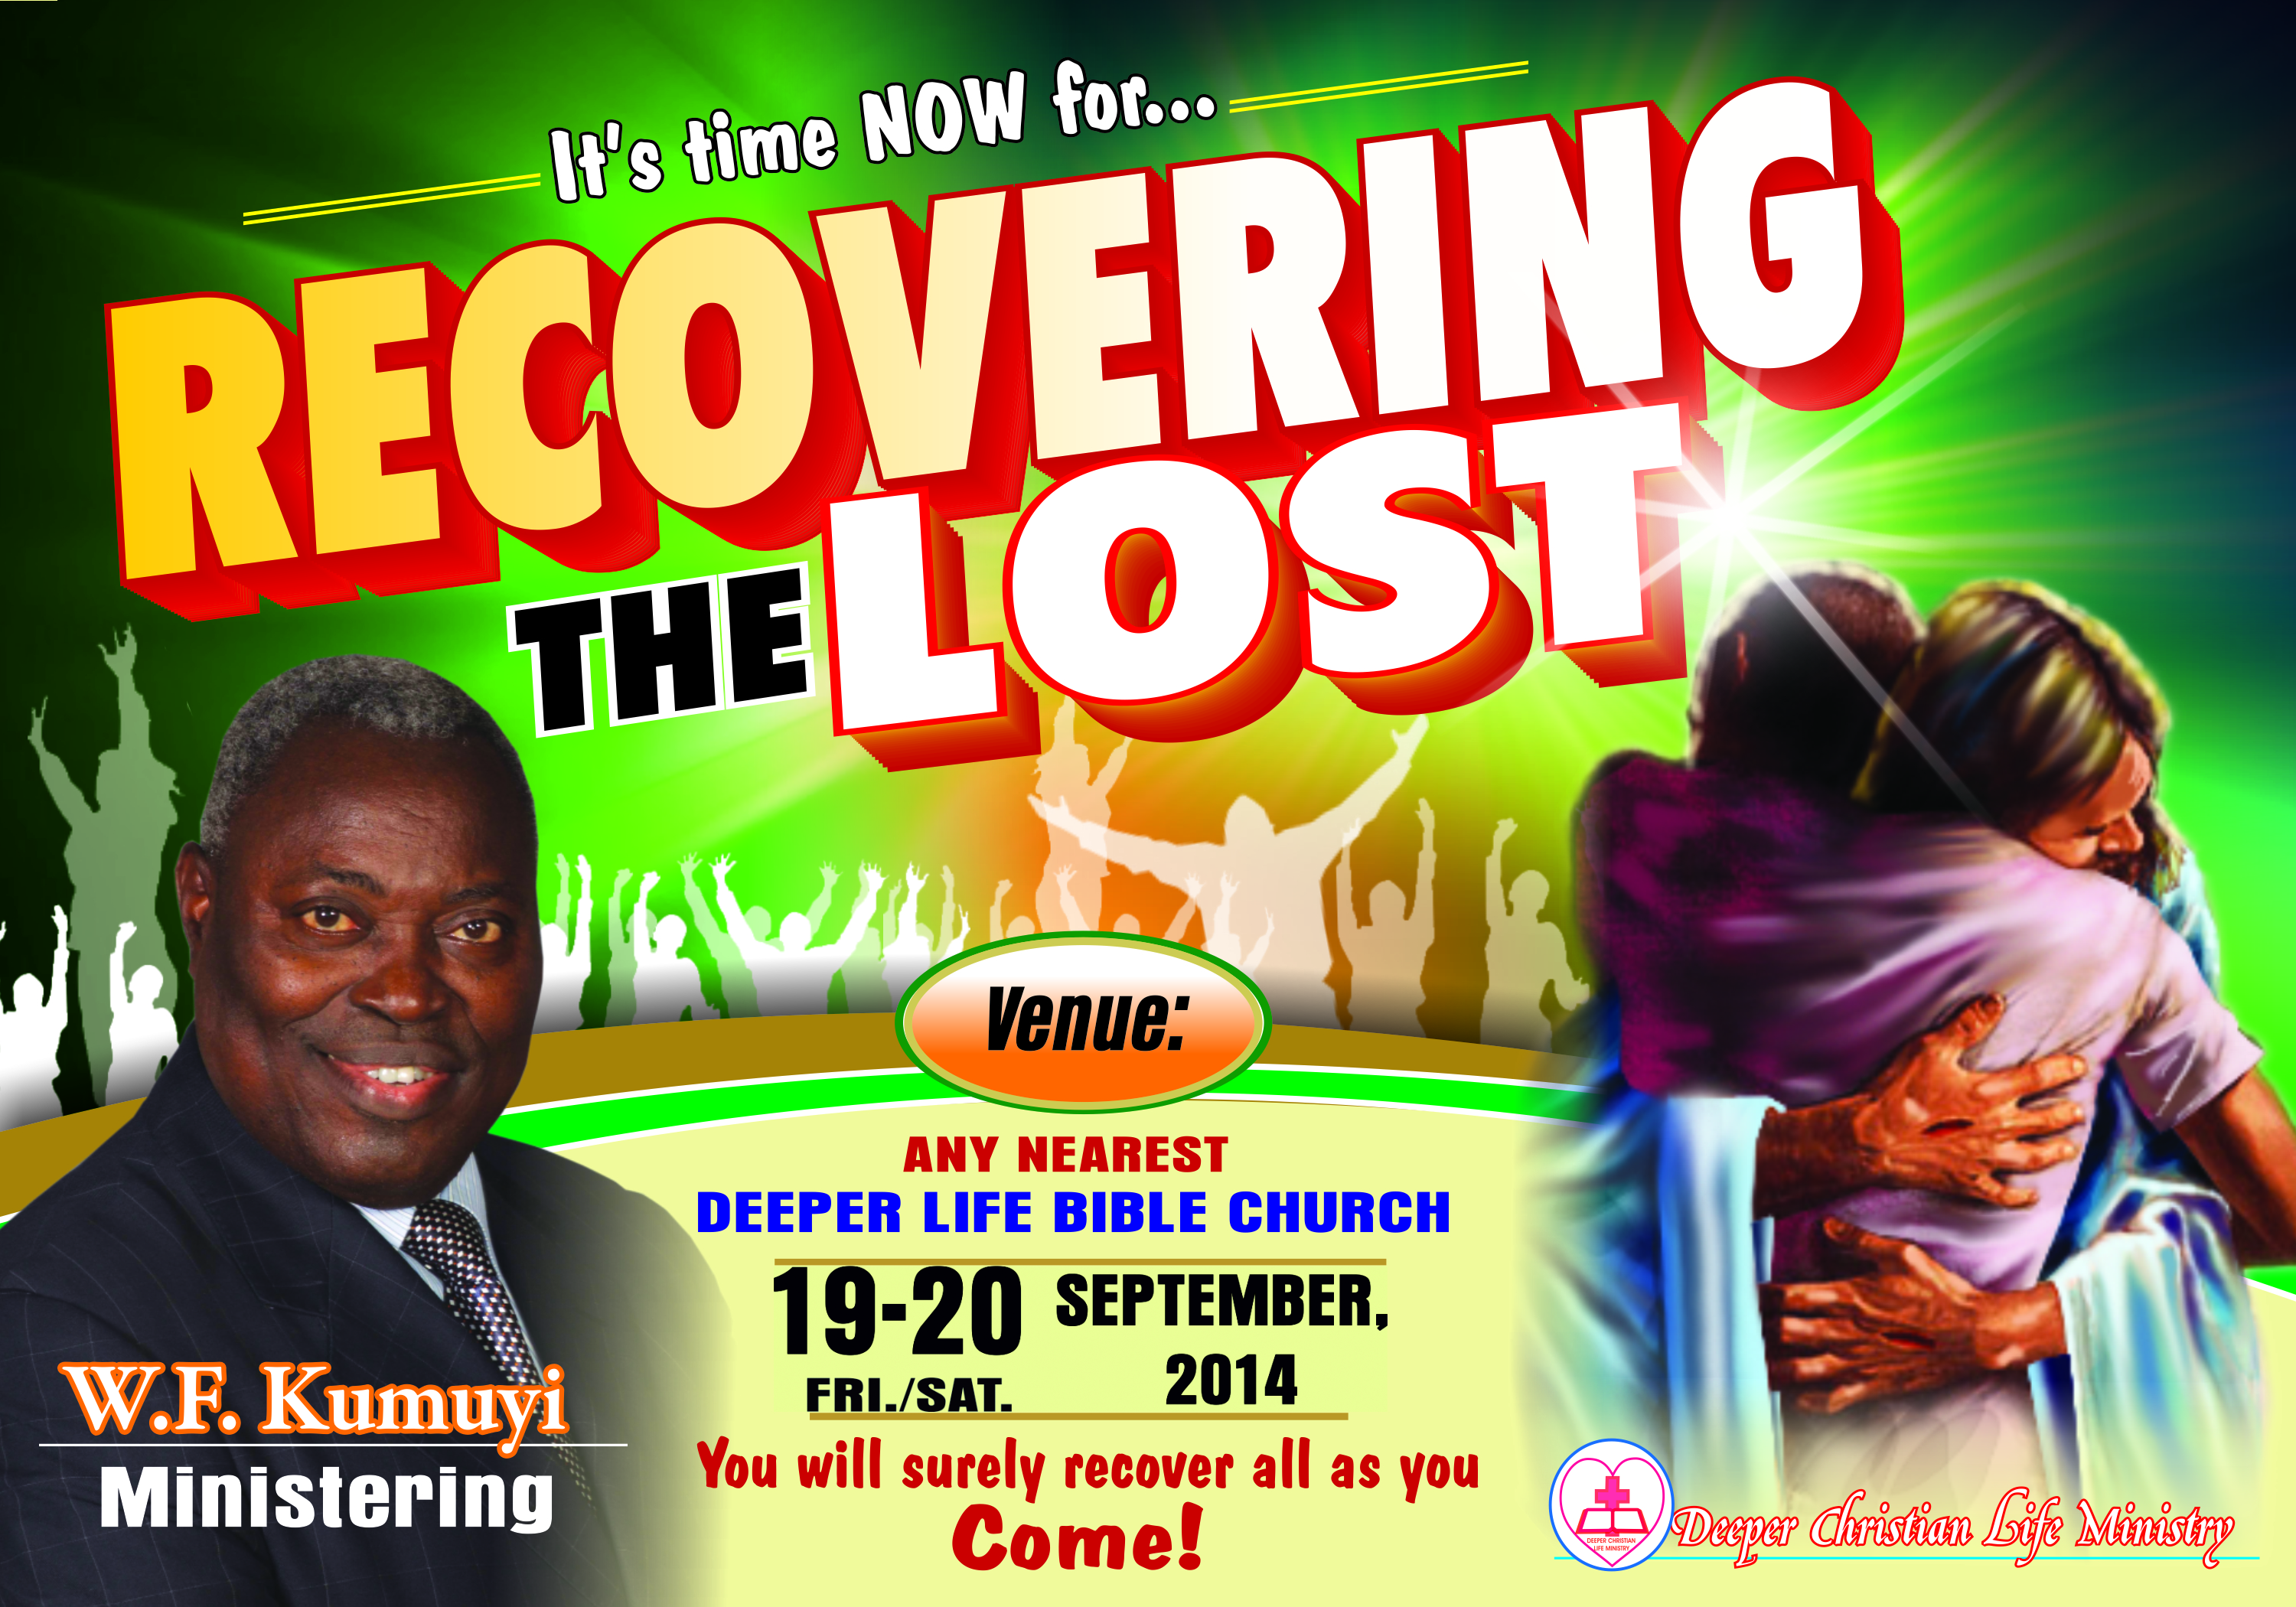 Recovering the Lost - Deeper Christian Life Ministry